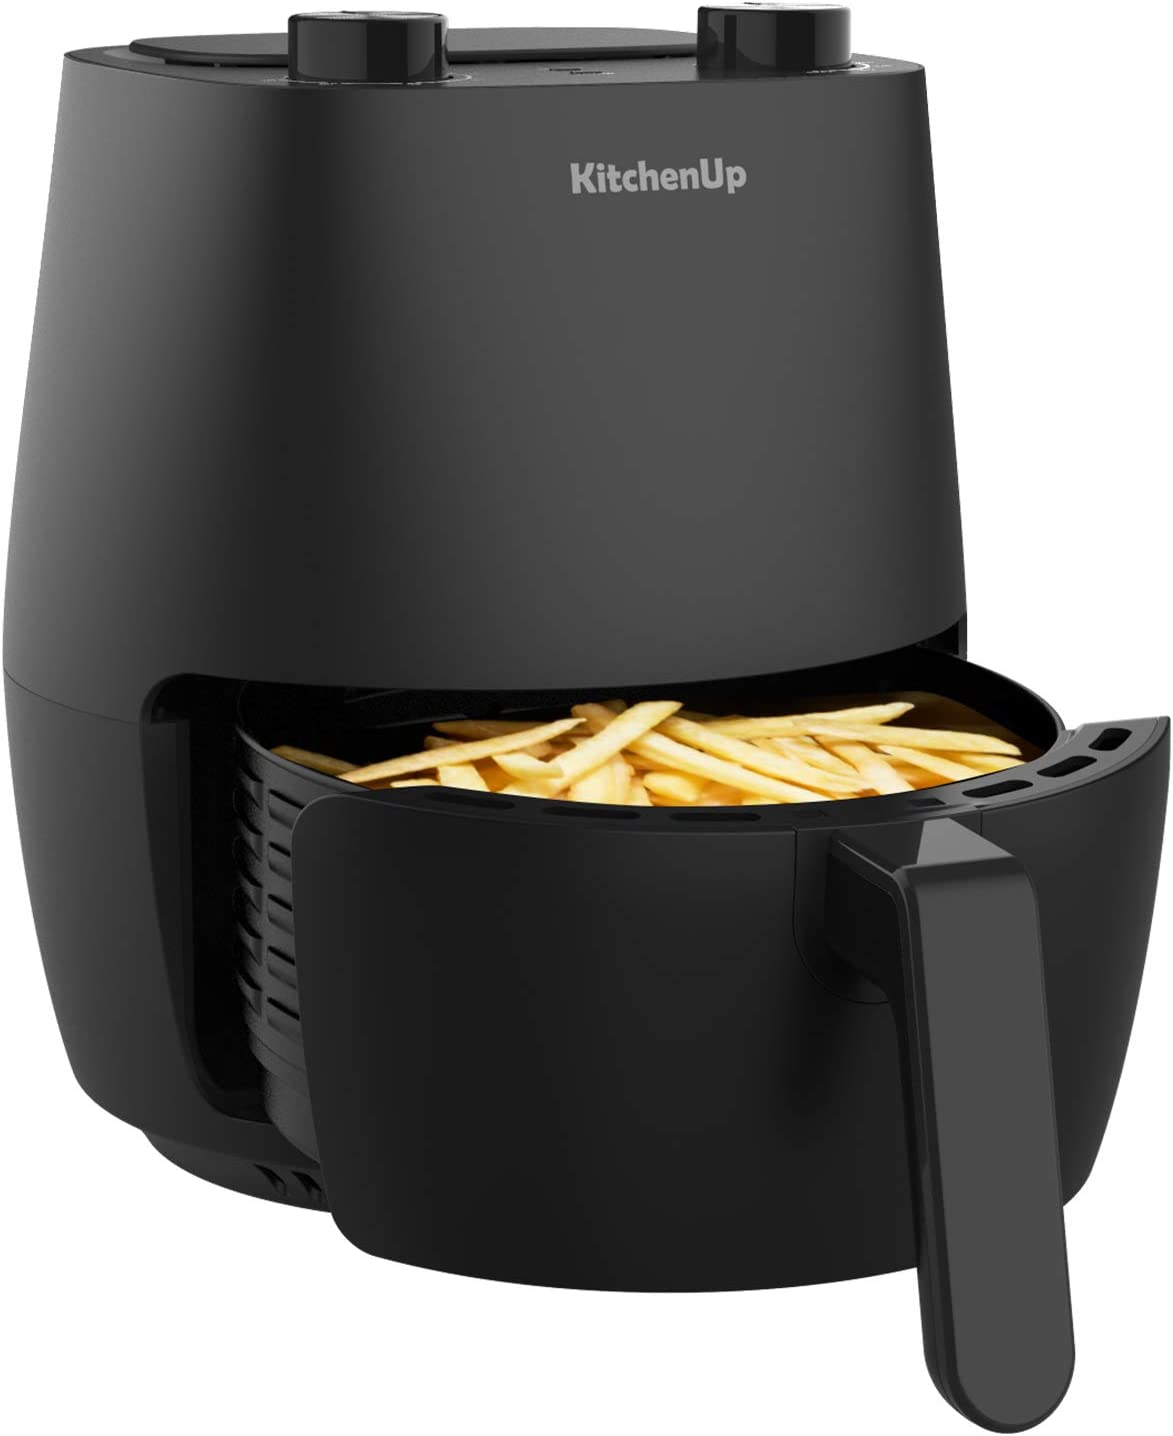 KitchenUp 3.7 Quarts Mini Air Fryer AFM09B Toaster, 1200W Electric Hot Oven and Oilless Cooker with Easy Use Knobs for Roasting, L, Black